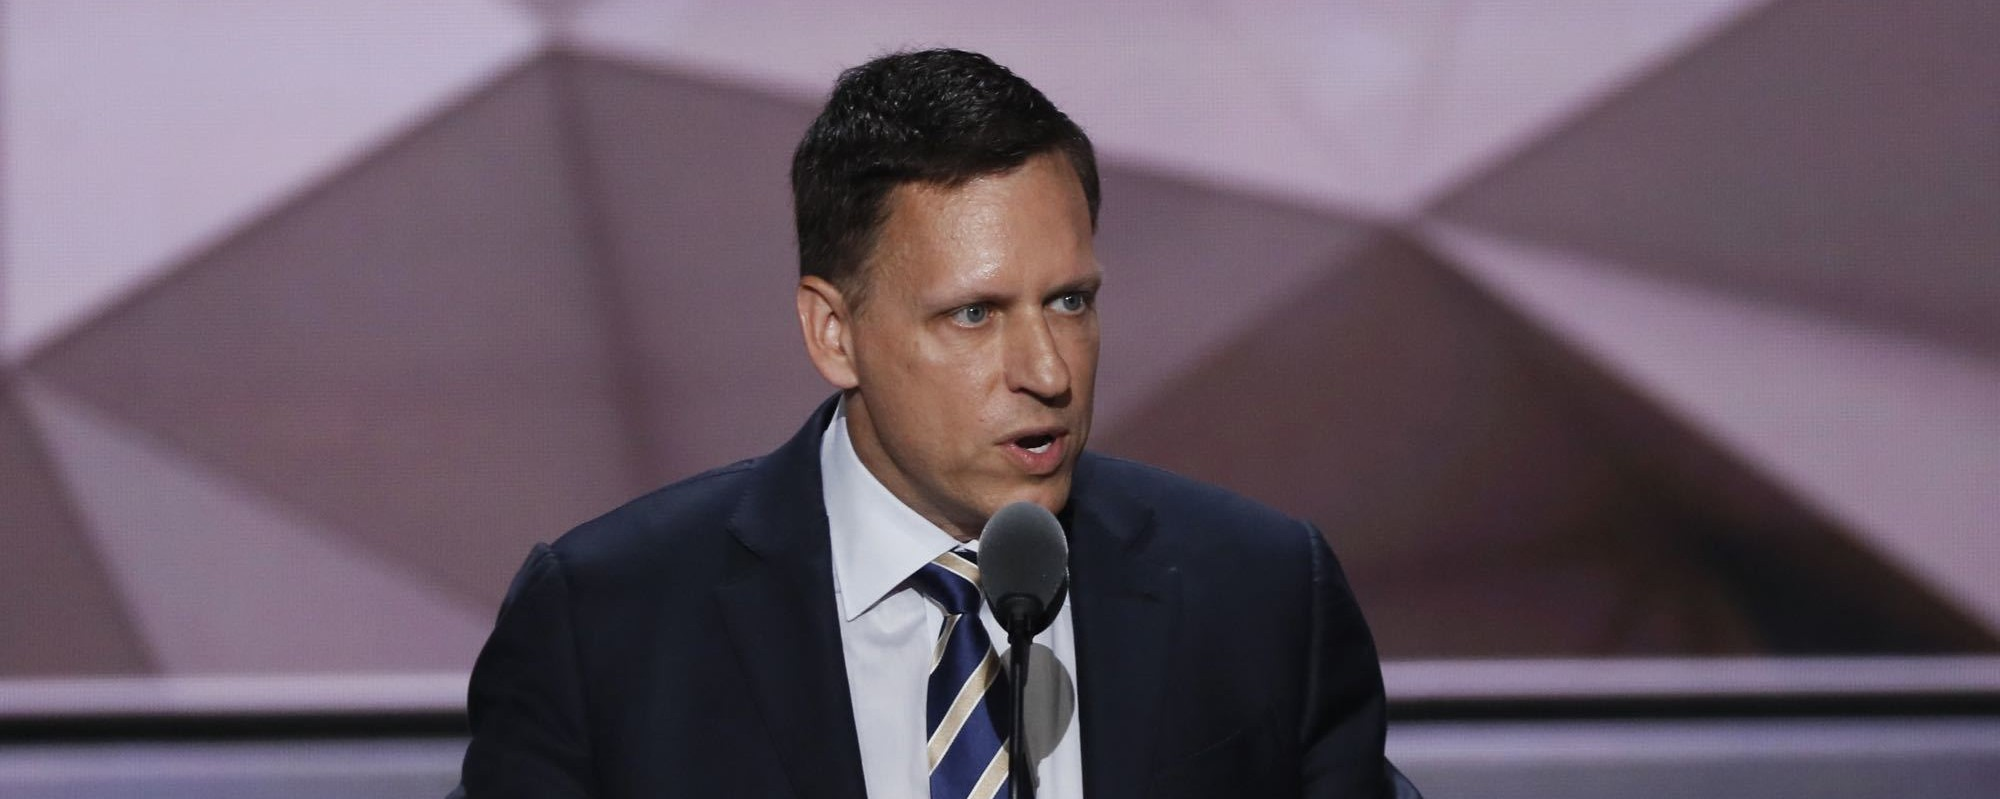 Most Americans don't care that Peter Thiel crushed Gawker